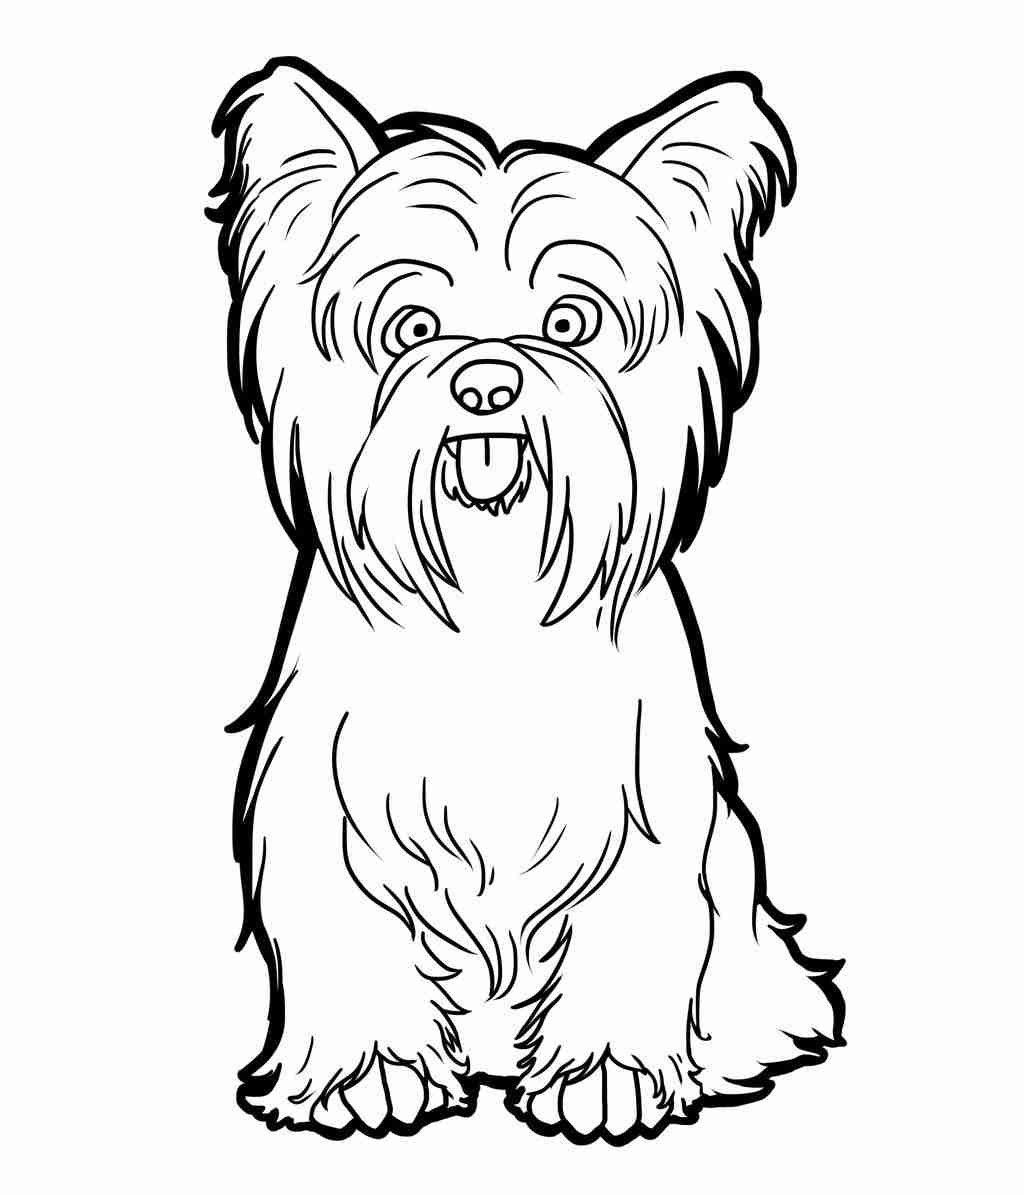 Unbelievable Design Yorkie Coloring Page Pages Pin Drawn Golden Retriever In Cute 19 Print Puppy Puppy Coloring Pages Dog Coloring Page Yorkie Dogs [ 1195 x 1024 Pixel ]